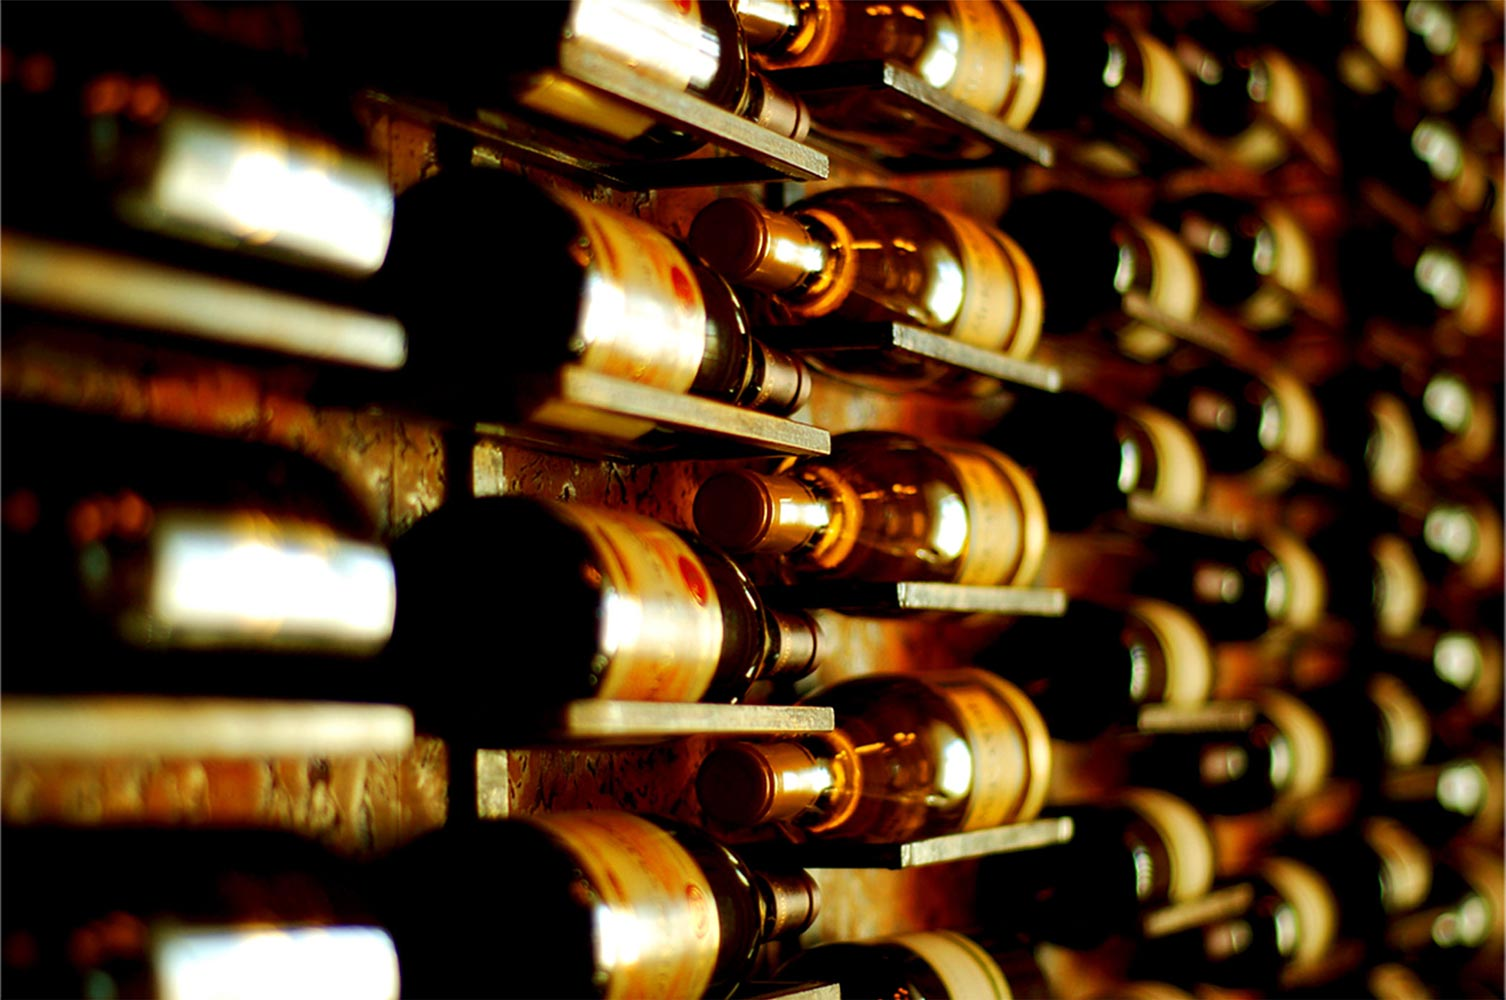 best-guided-tour-in-rome-Wine-tasting-experience-bottle.jpg